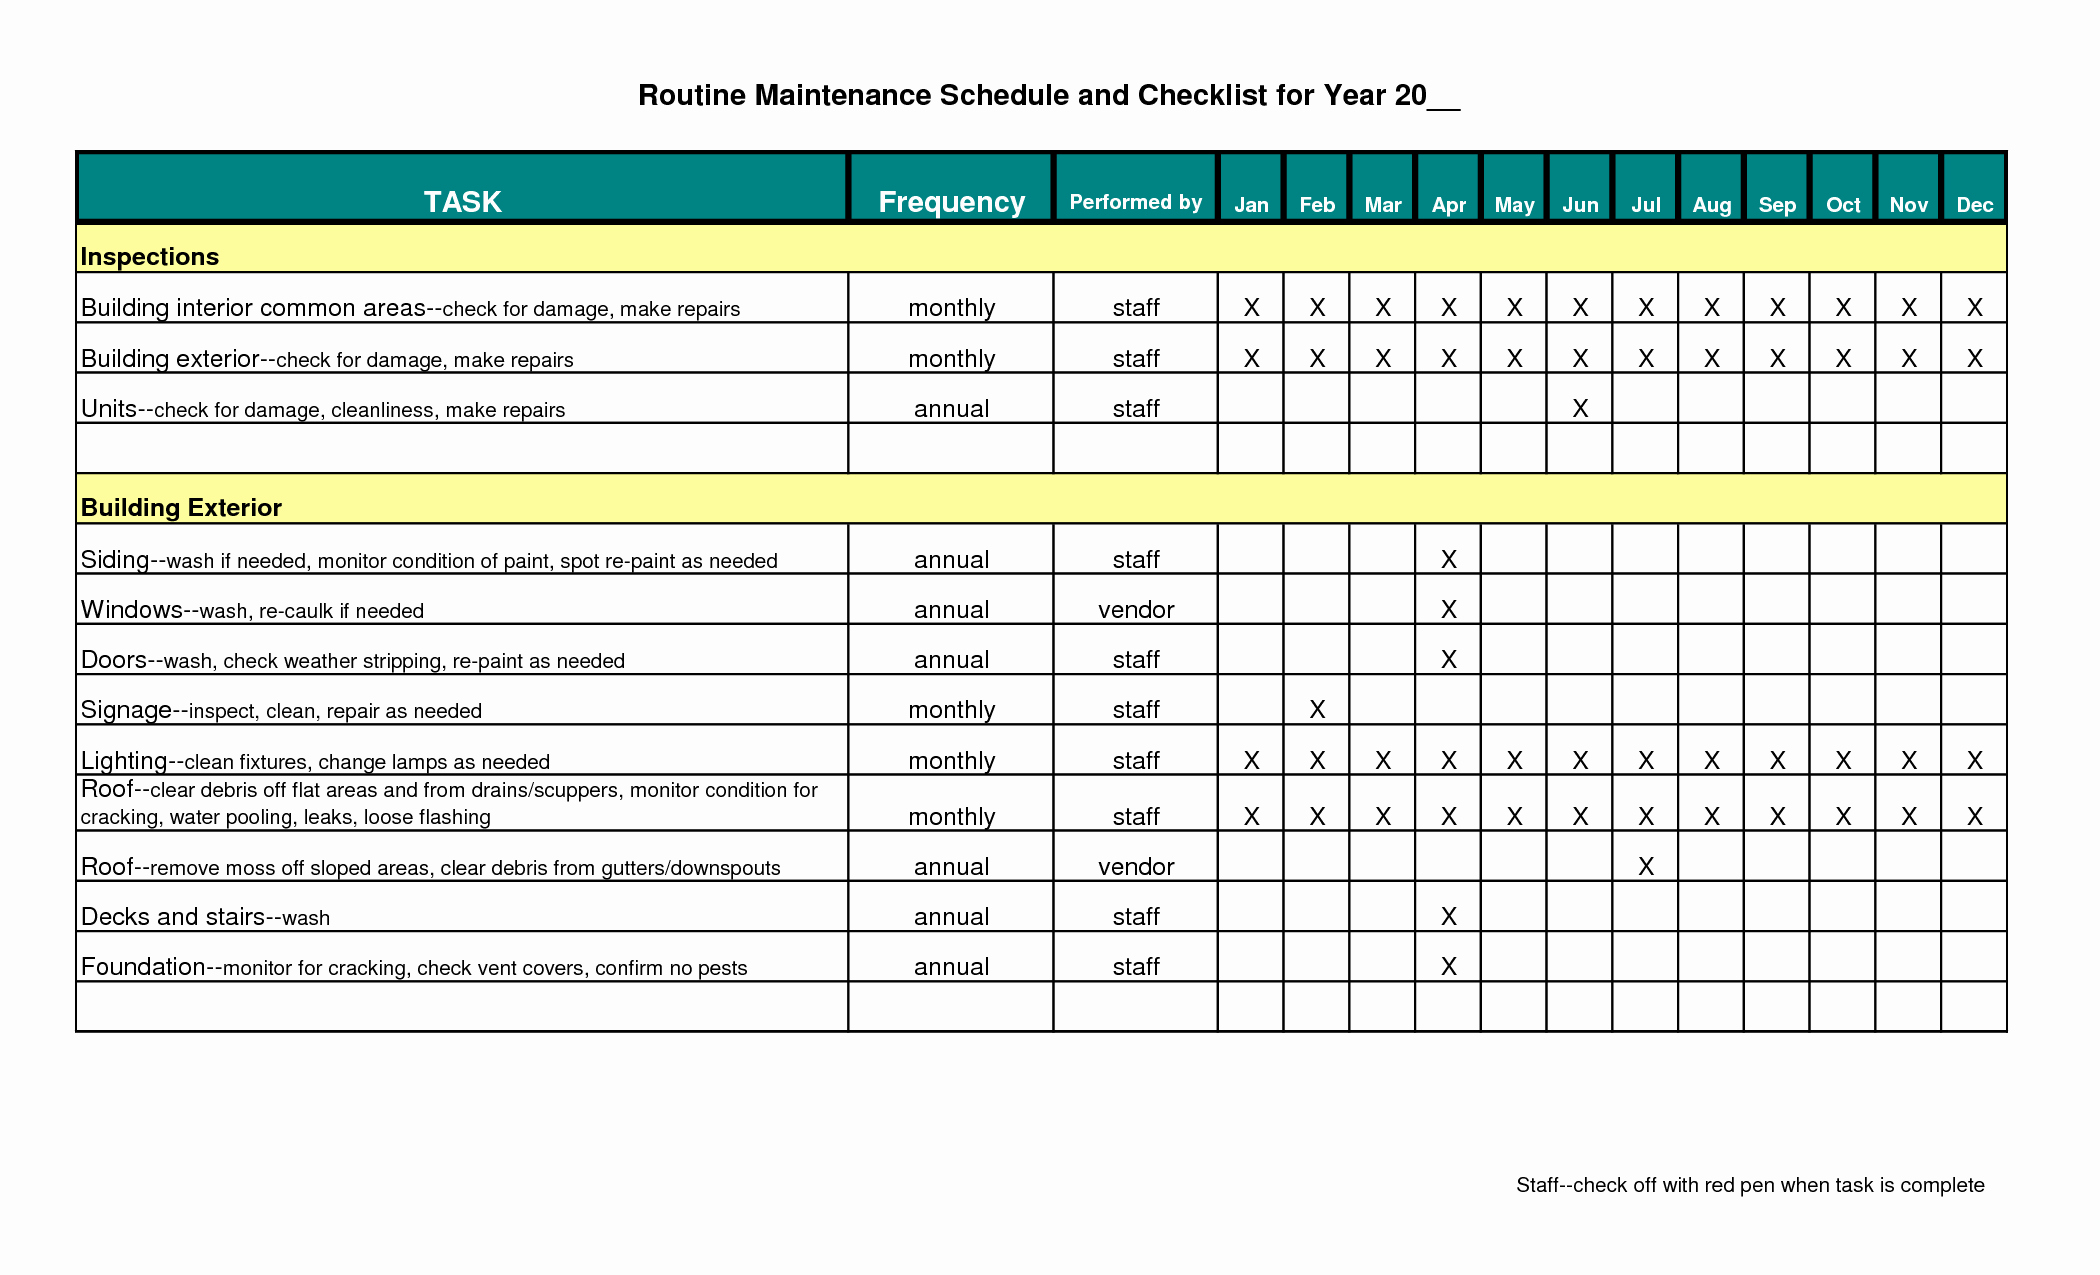 Preventative Maintenance Schedule Template Lovely Preventive Maintenance Schedule Template Excel